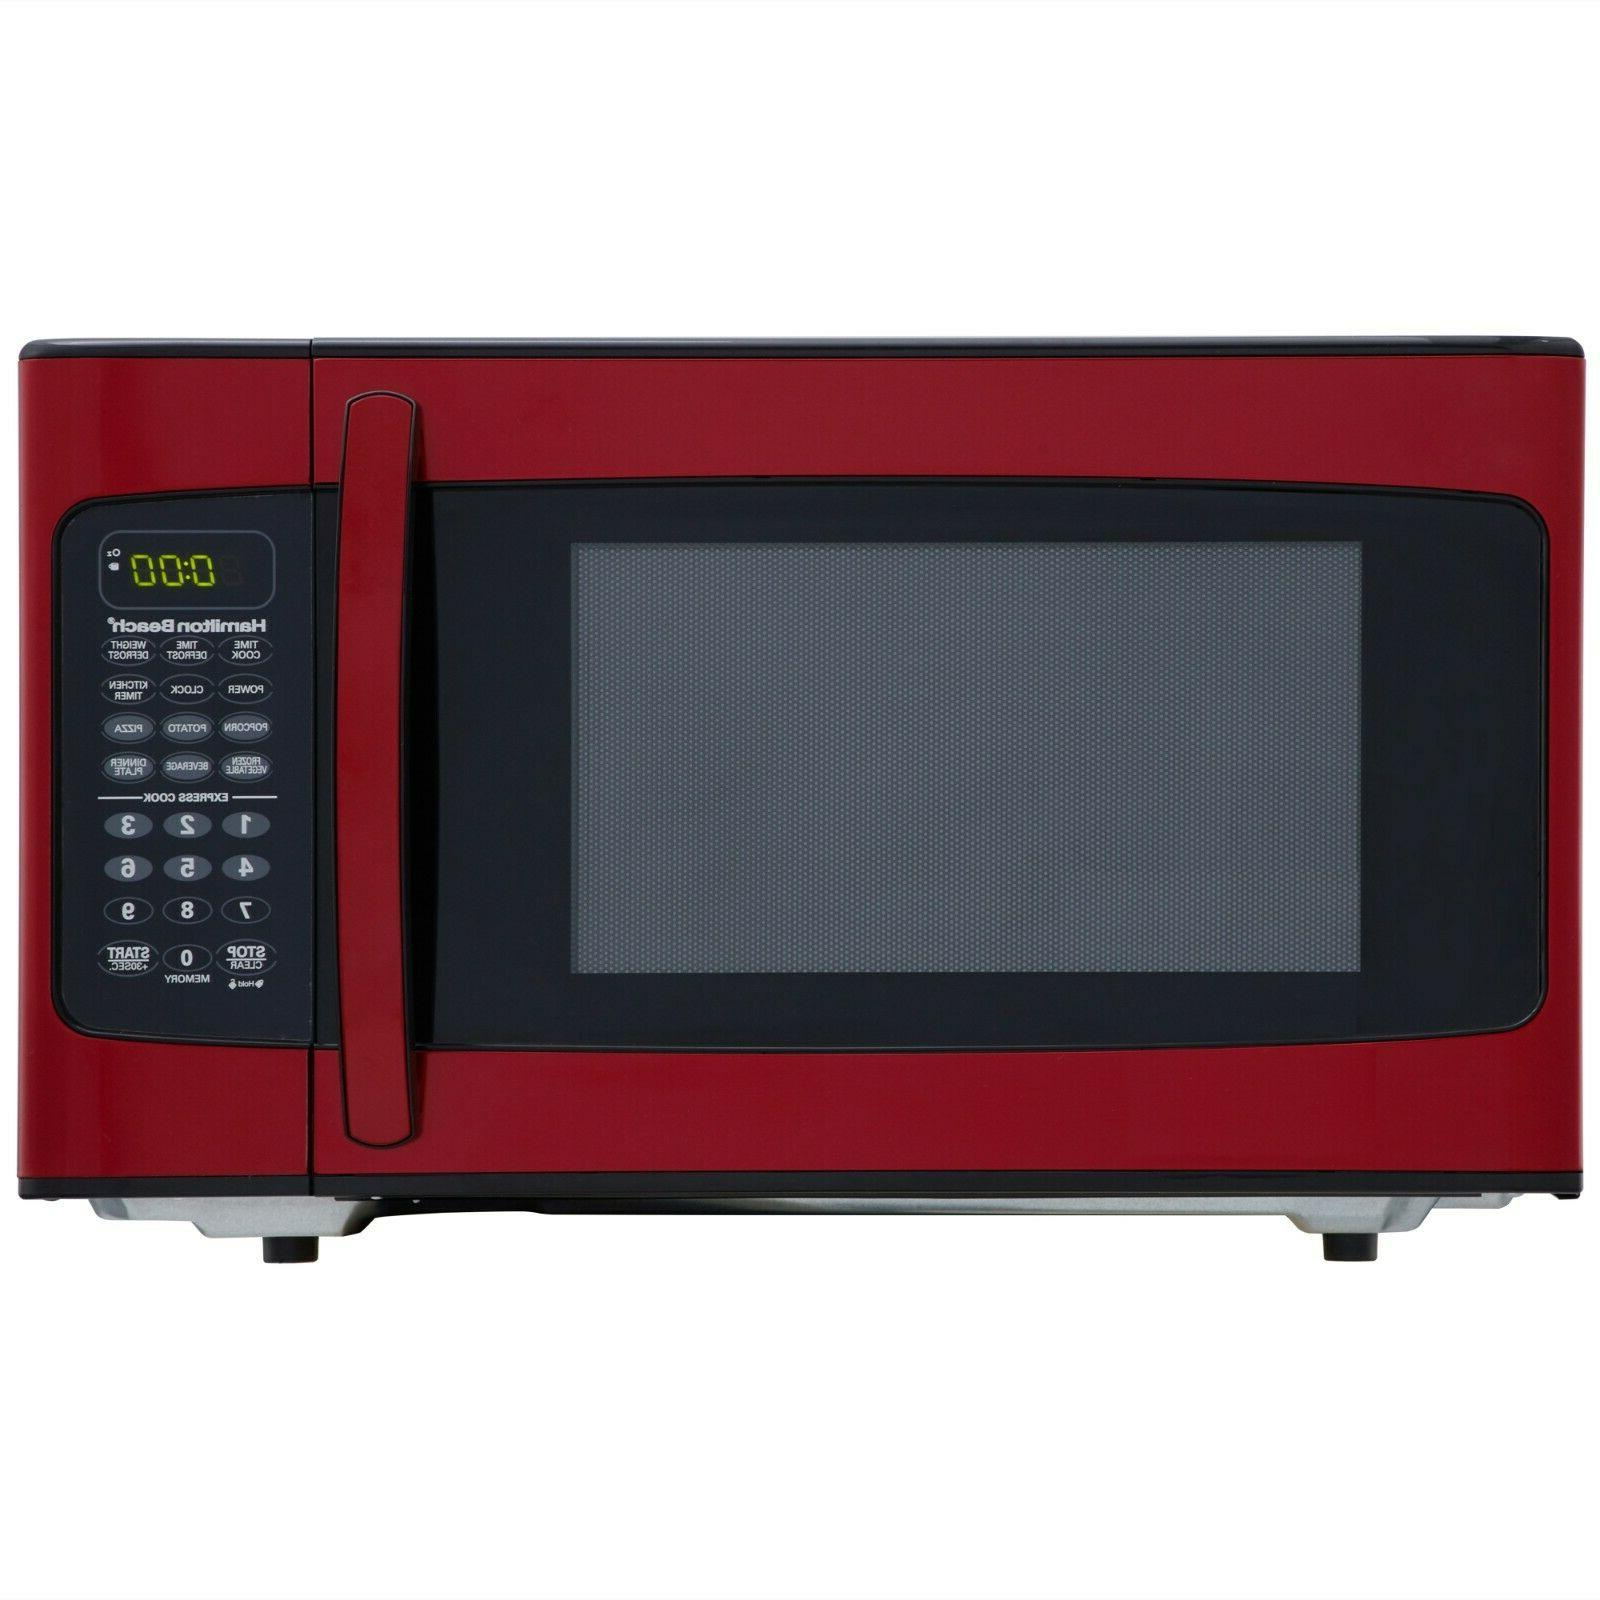 New Red Microwave - Dorm Room - Home - 1.1 cu. ft. Counterto